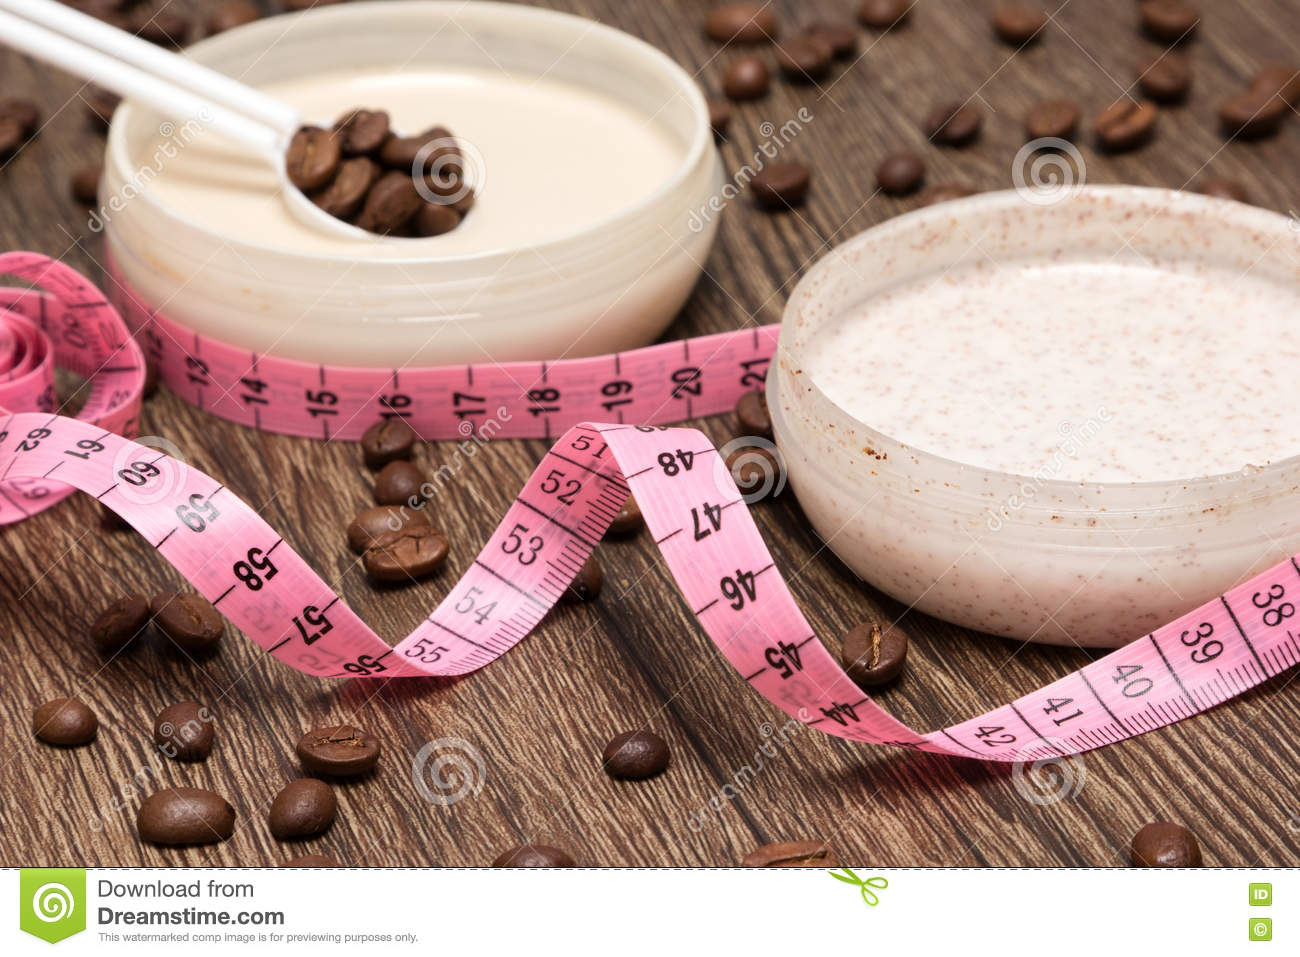 Body measuring tape and anti-cellulite cosmetic products